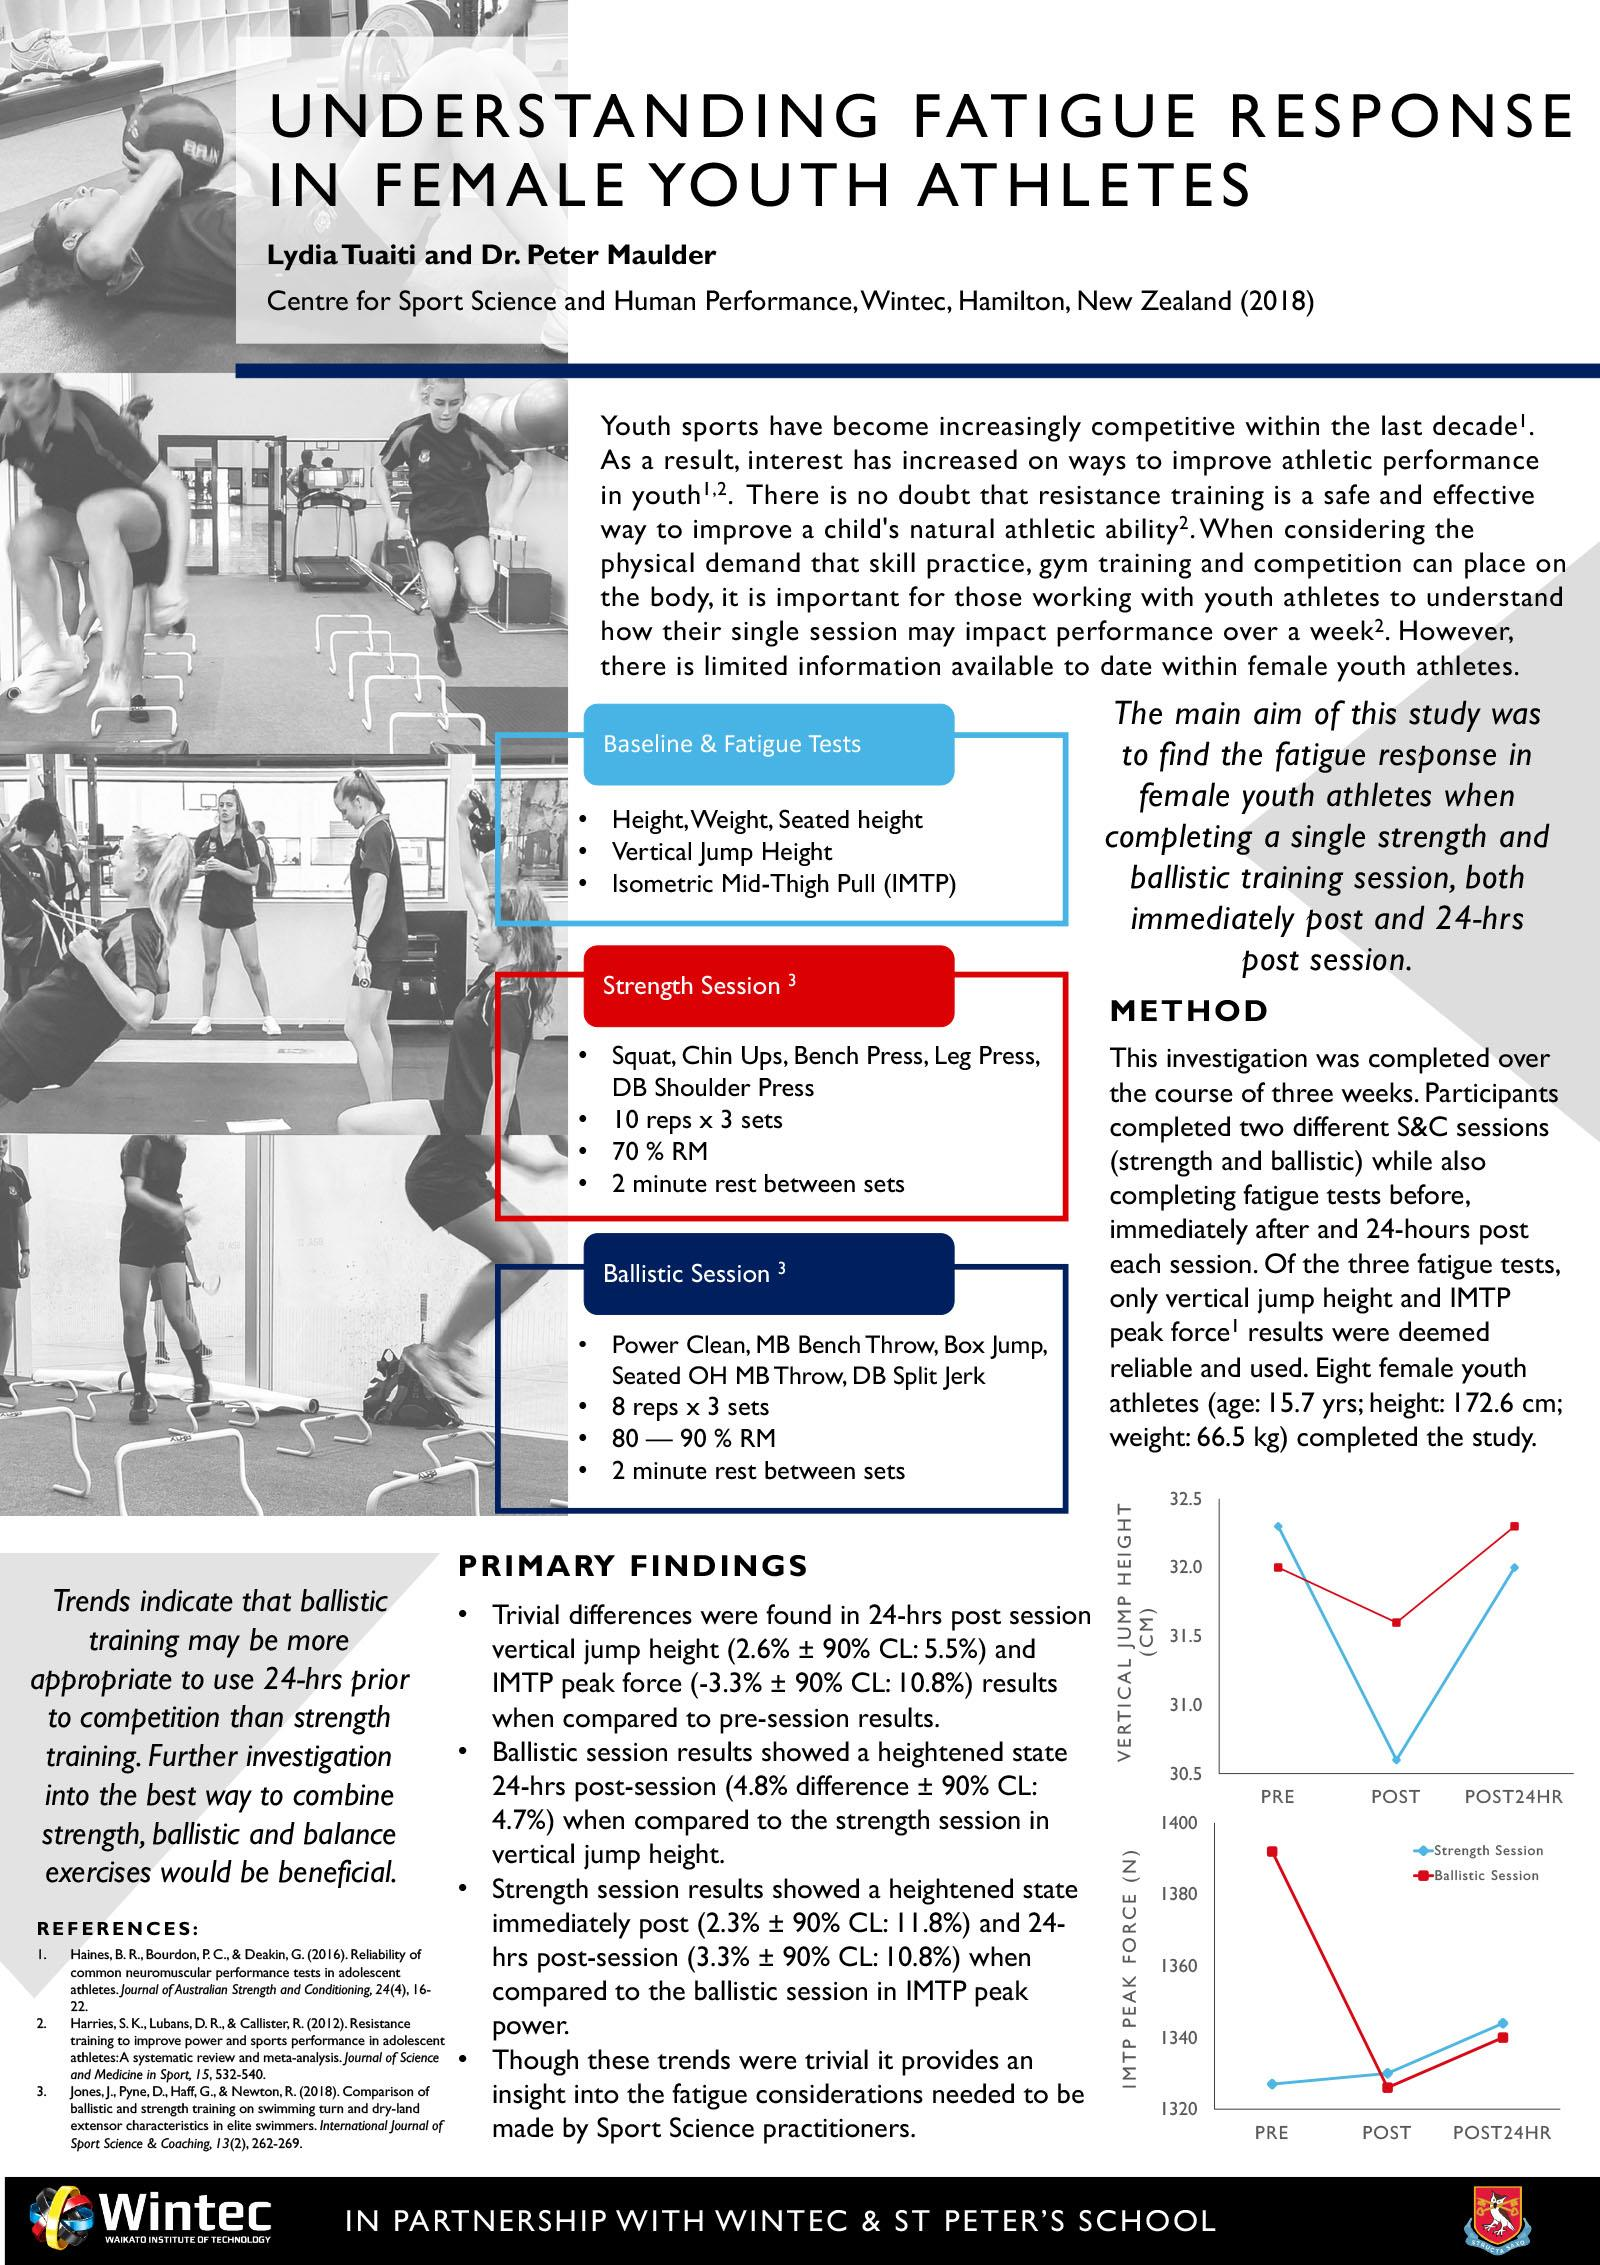 Understanding fatigue response in female youth athletes